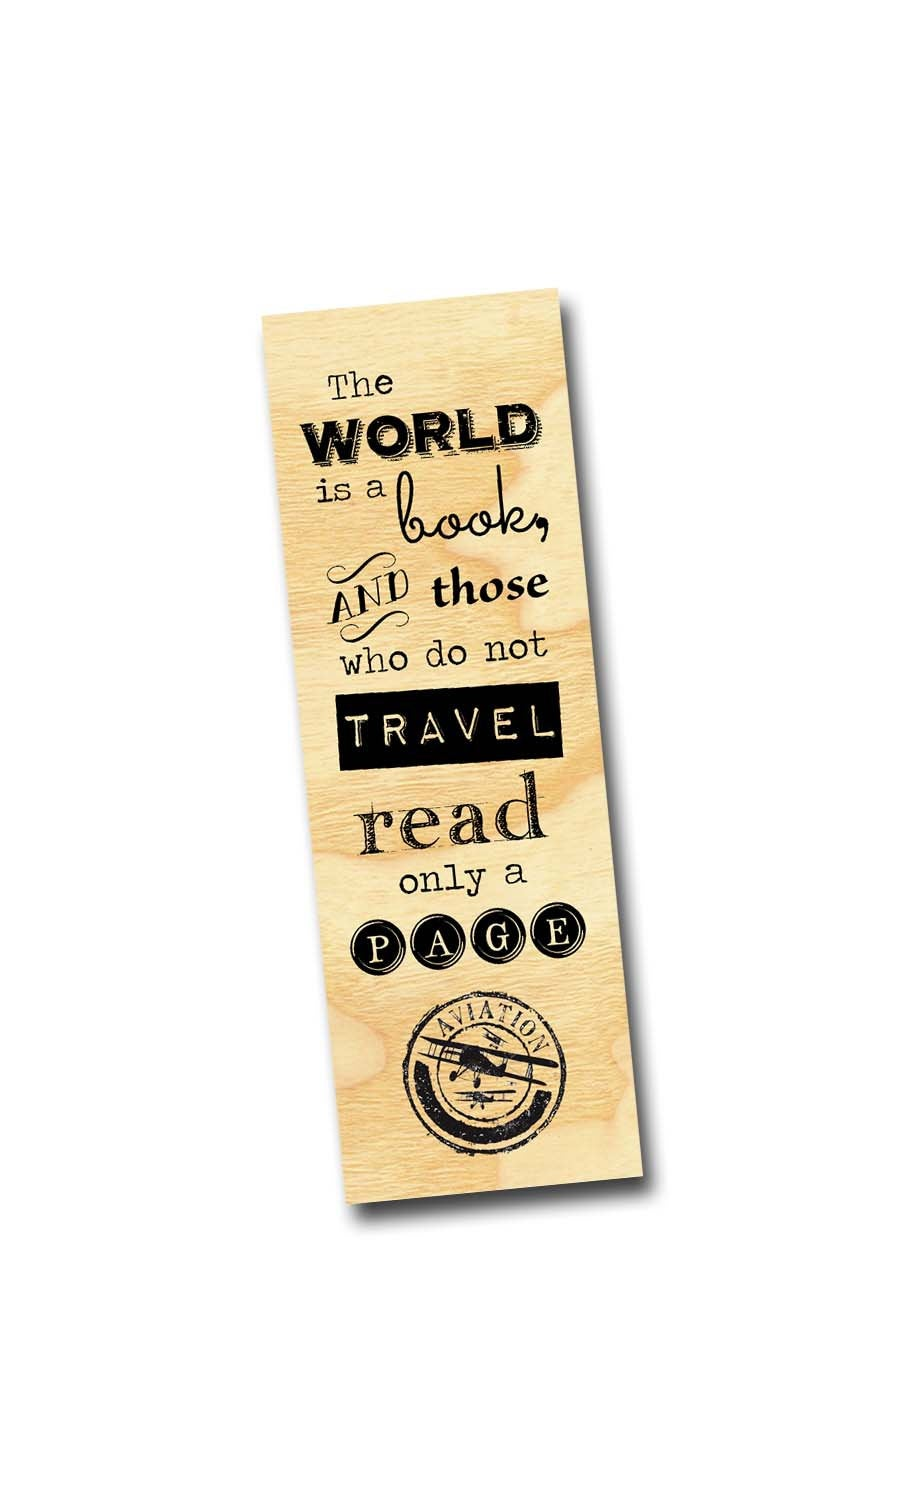 The World is a Book and those who do not Travel, read only a Page- Wooden Ash Bookmark